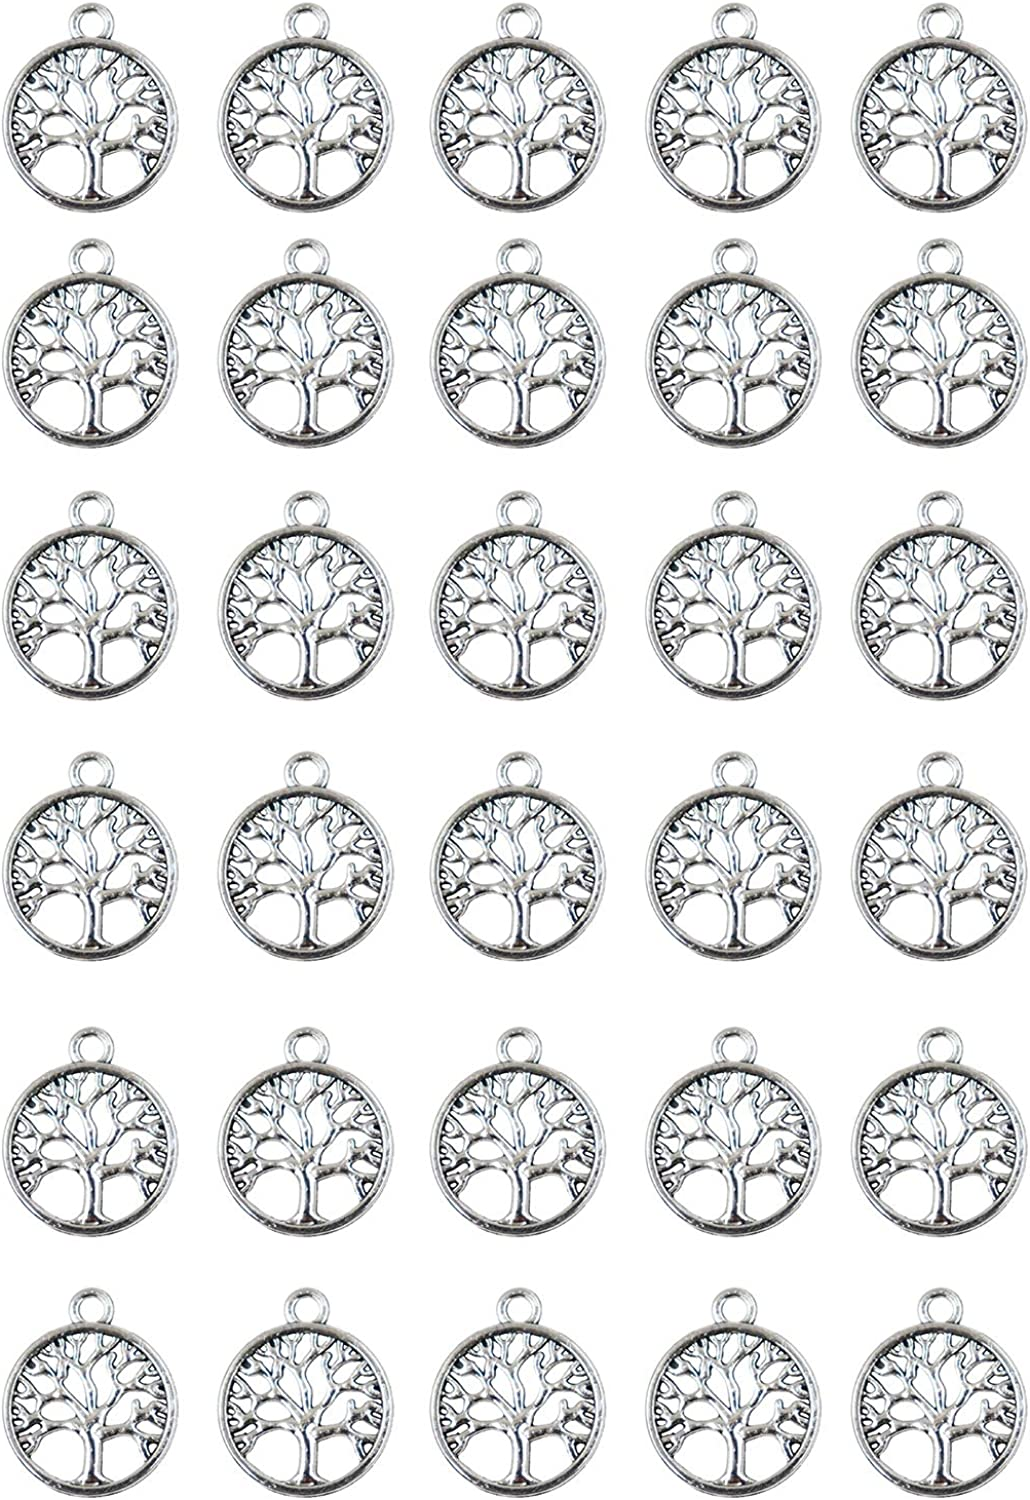 Royee 30 Wholesale Pcs Tree security of Life Beads Pendant Charms Metal Round Antiq